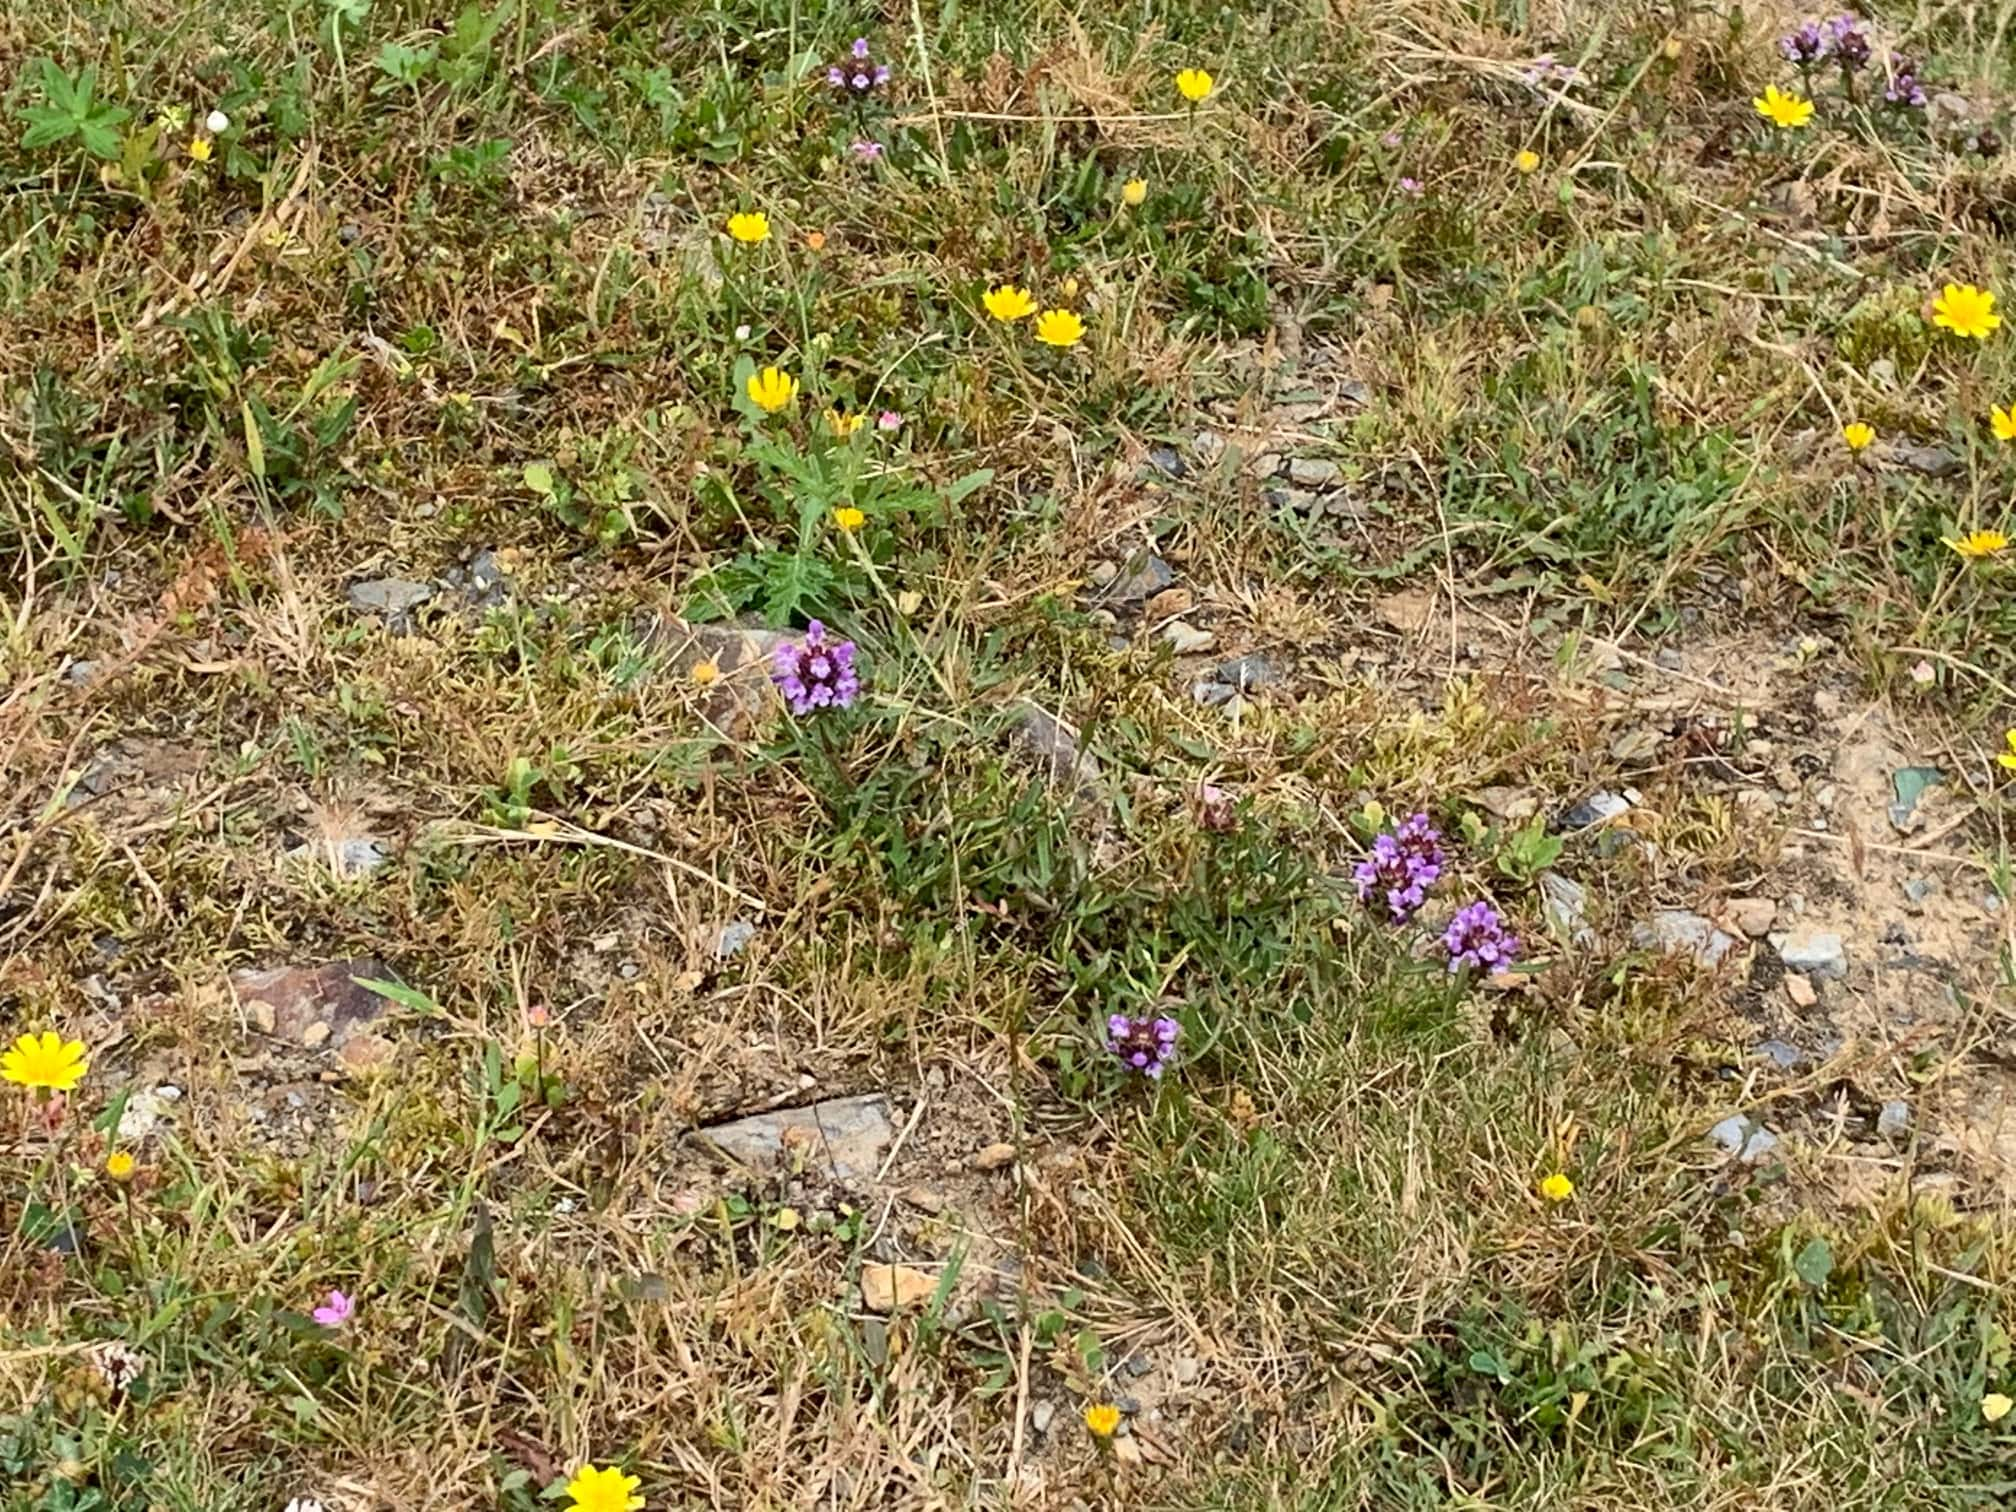 Mountain flowers between Spanish Basque and French Basque sides